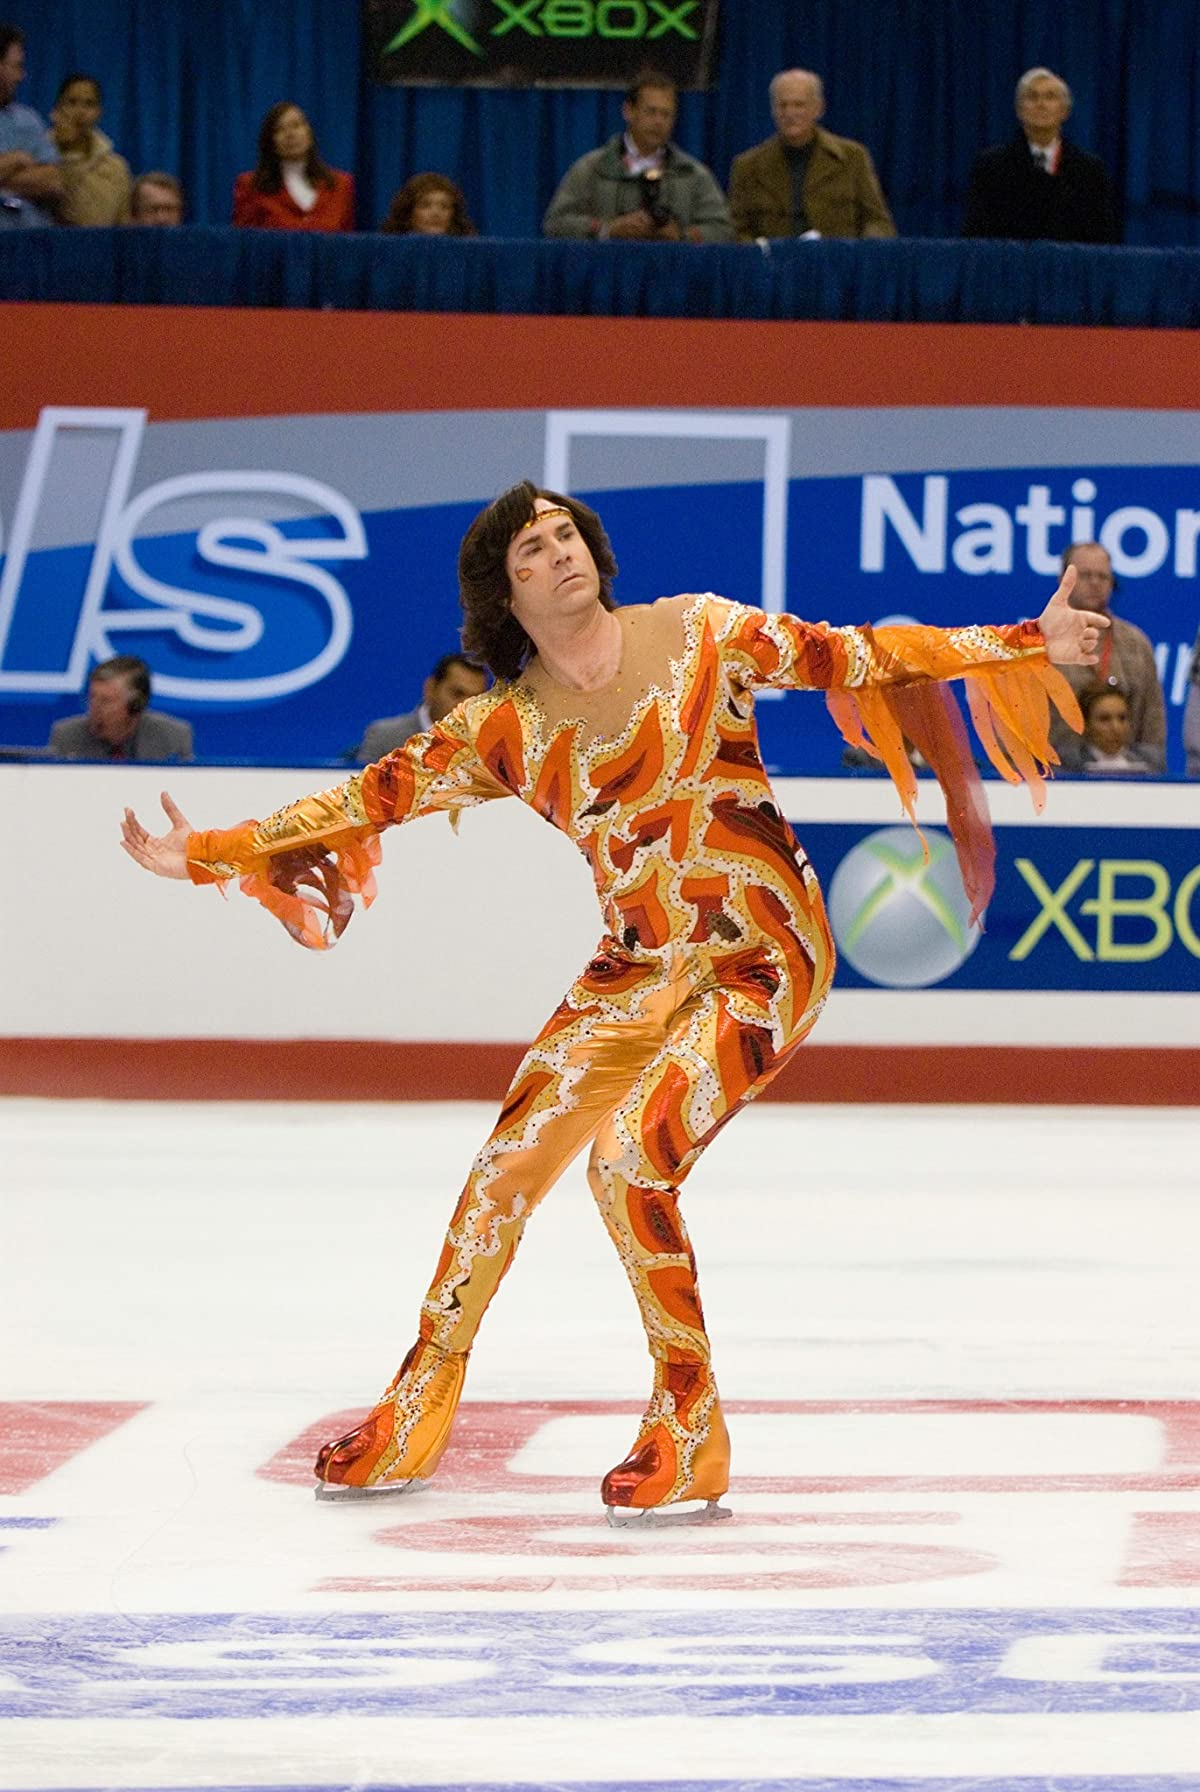 Blades of glory 2007 quotes imdb - Will ferrell one man show ...